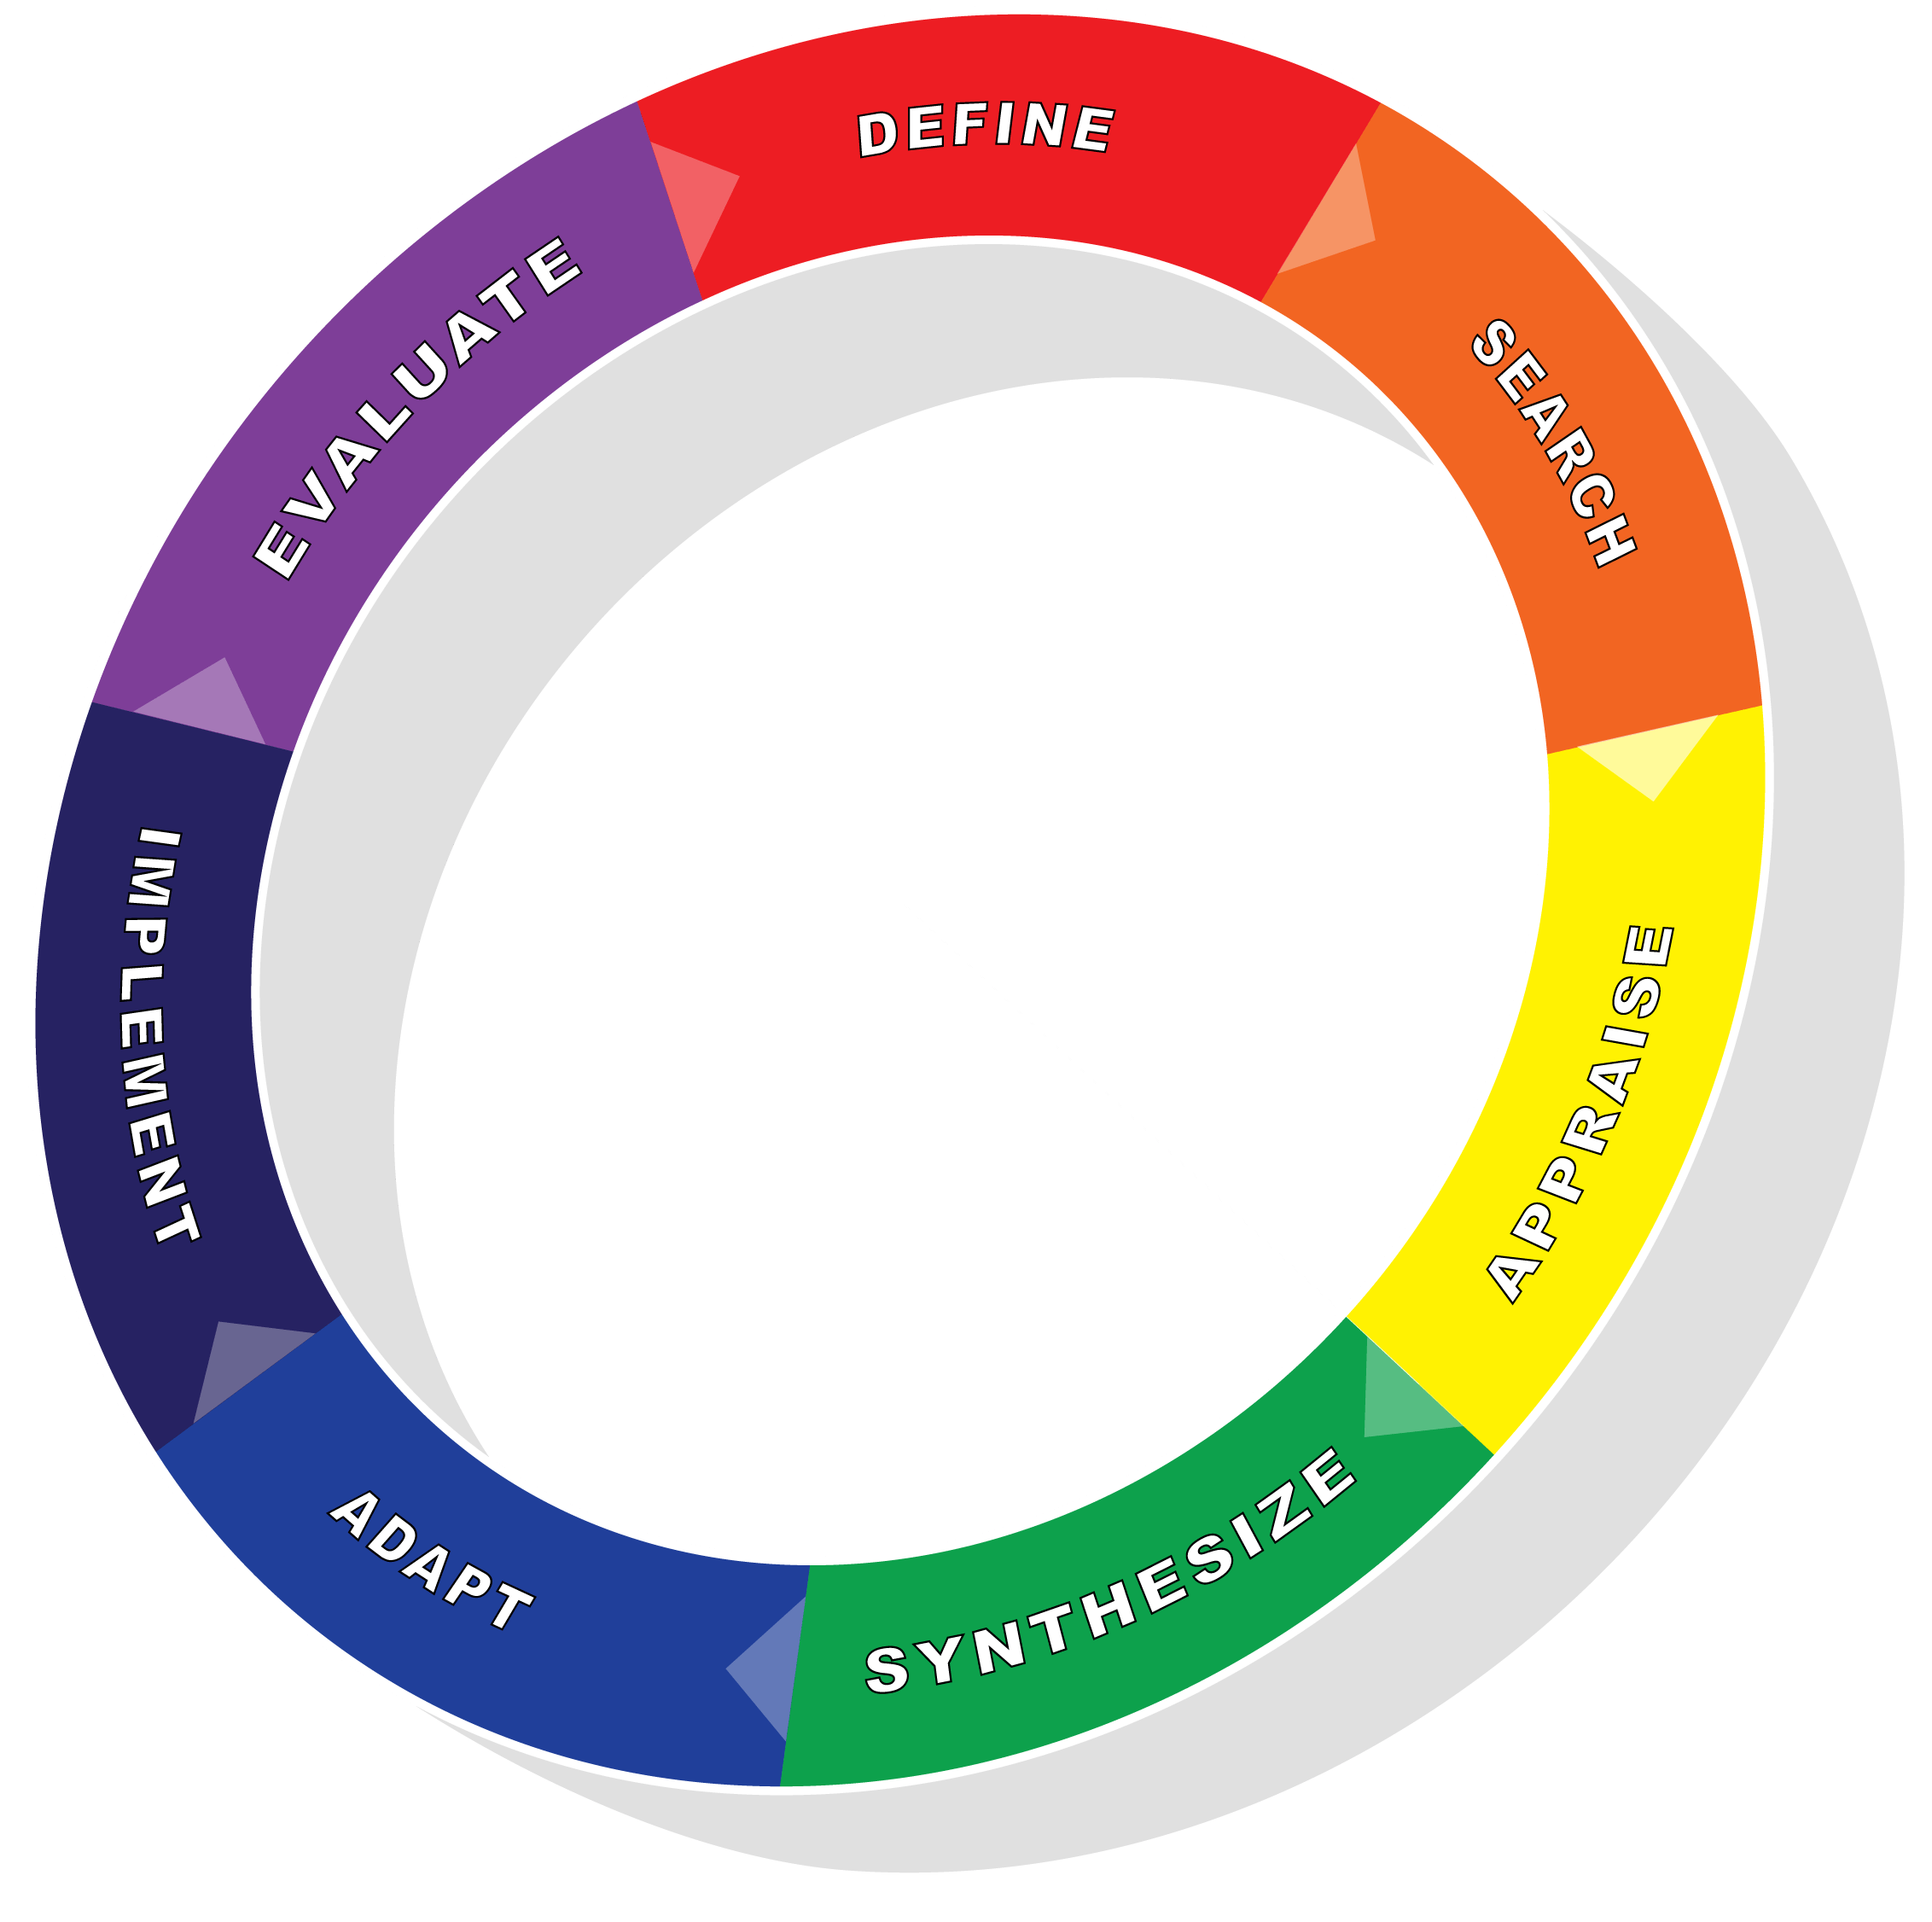 Wheel describing the seven steps of evidence-informed decision making: define, search, appraise, synthesize, adapt, implement, evaluate.